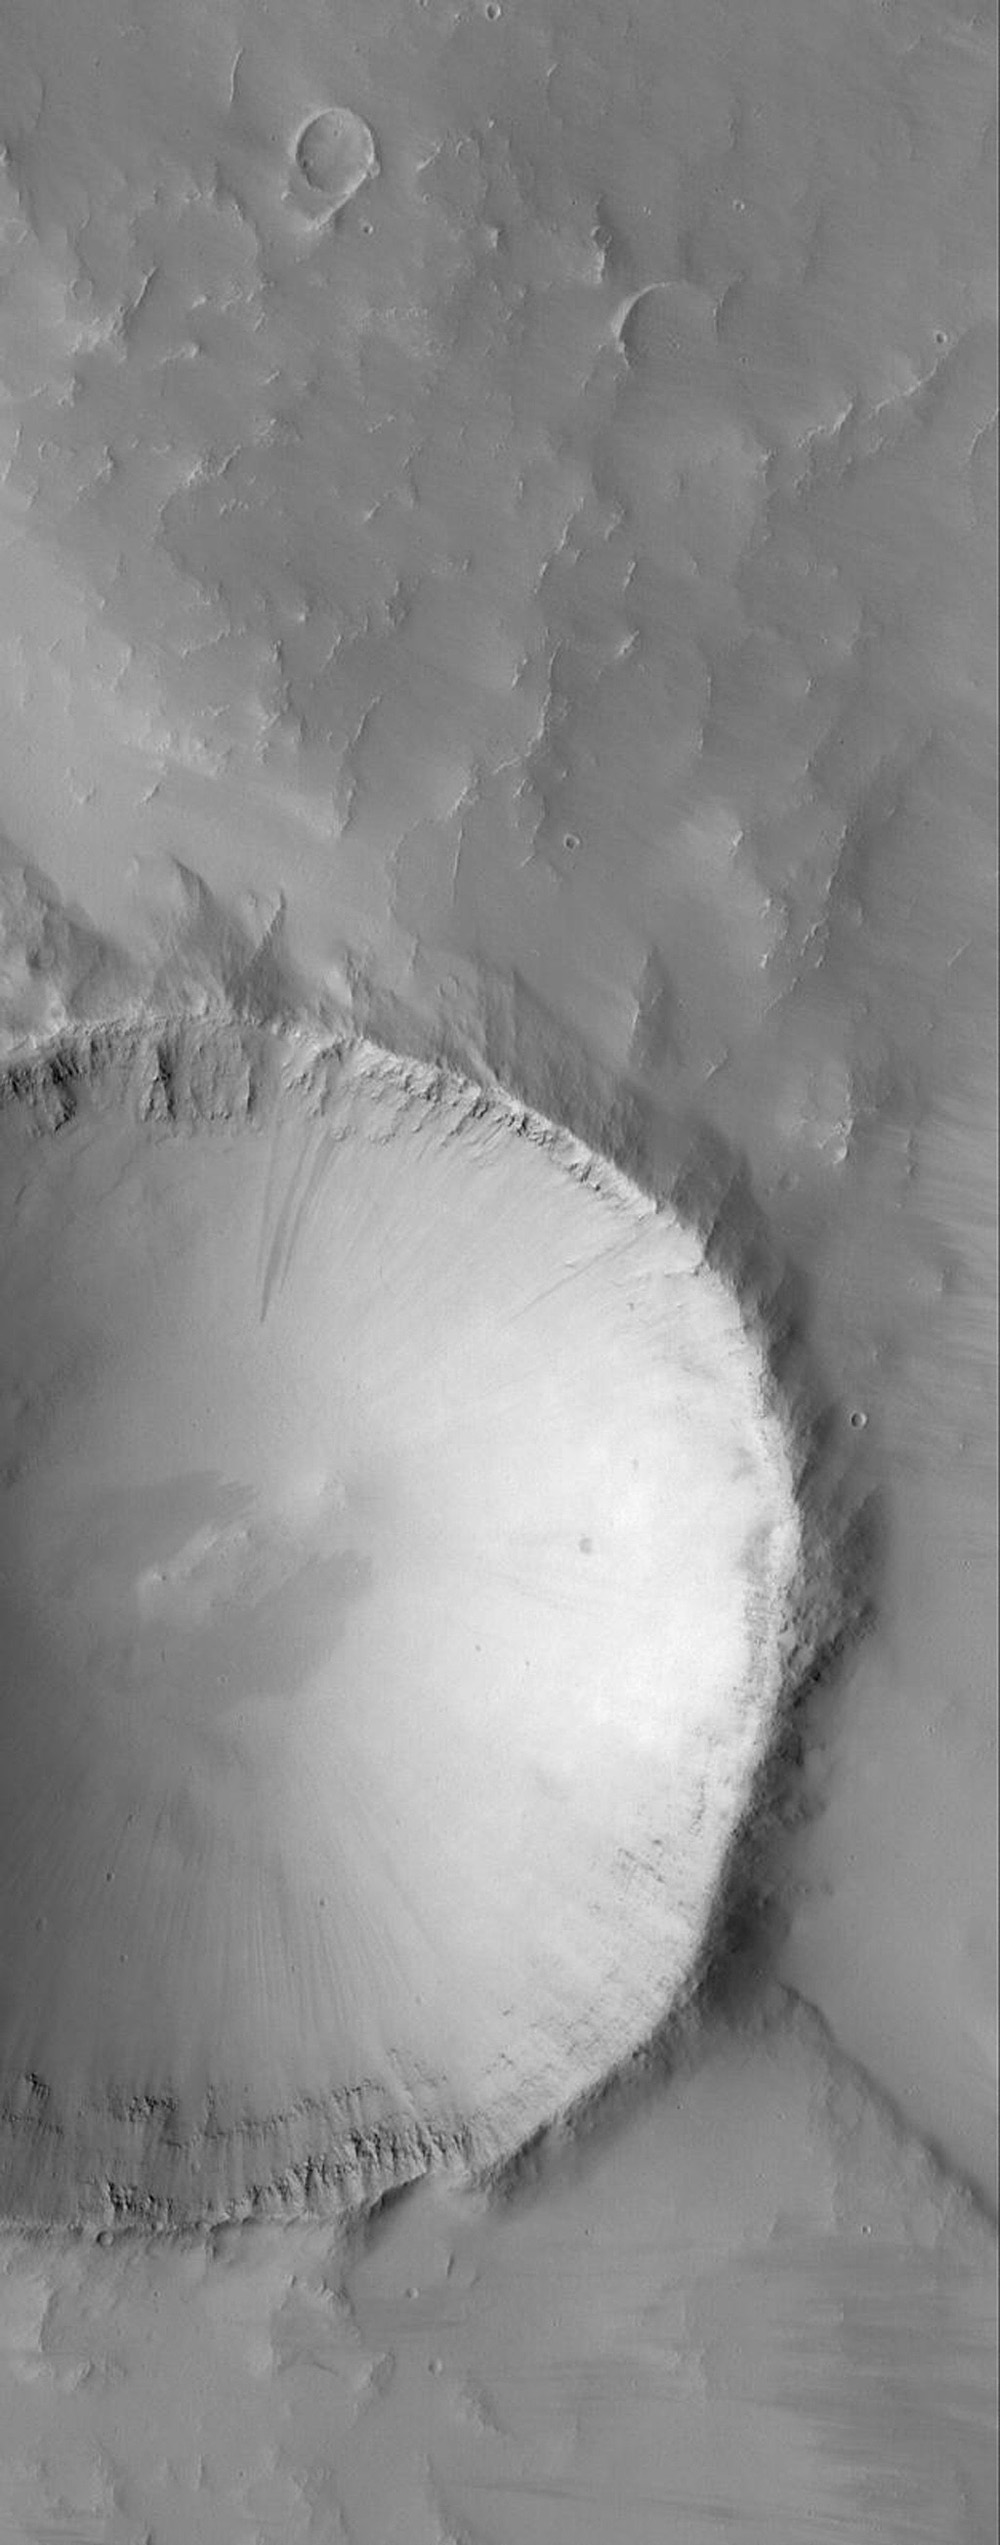 This image from NASA's Mars Global Surveyor shows an impact crater that is approximately 3.5 kilometers (2.2 miles) in diameter. Layered rock units are visible on the inside of the raised crater rim.